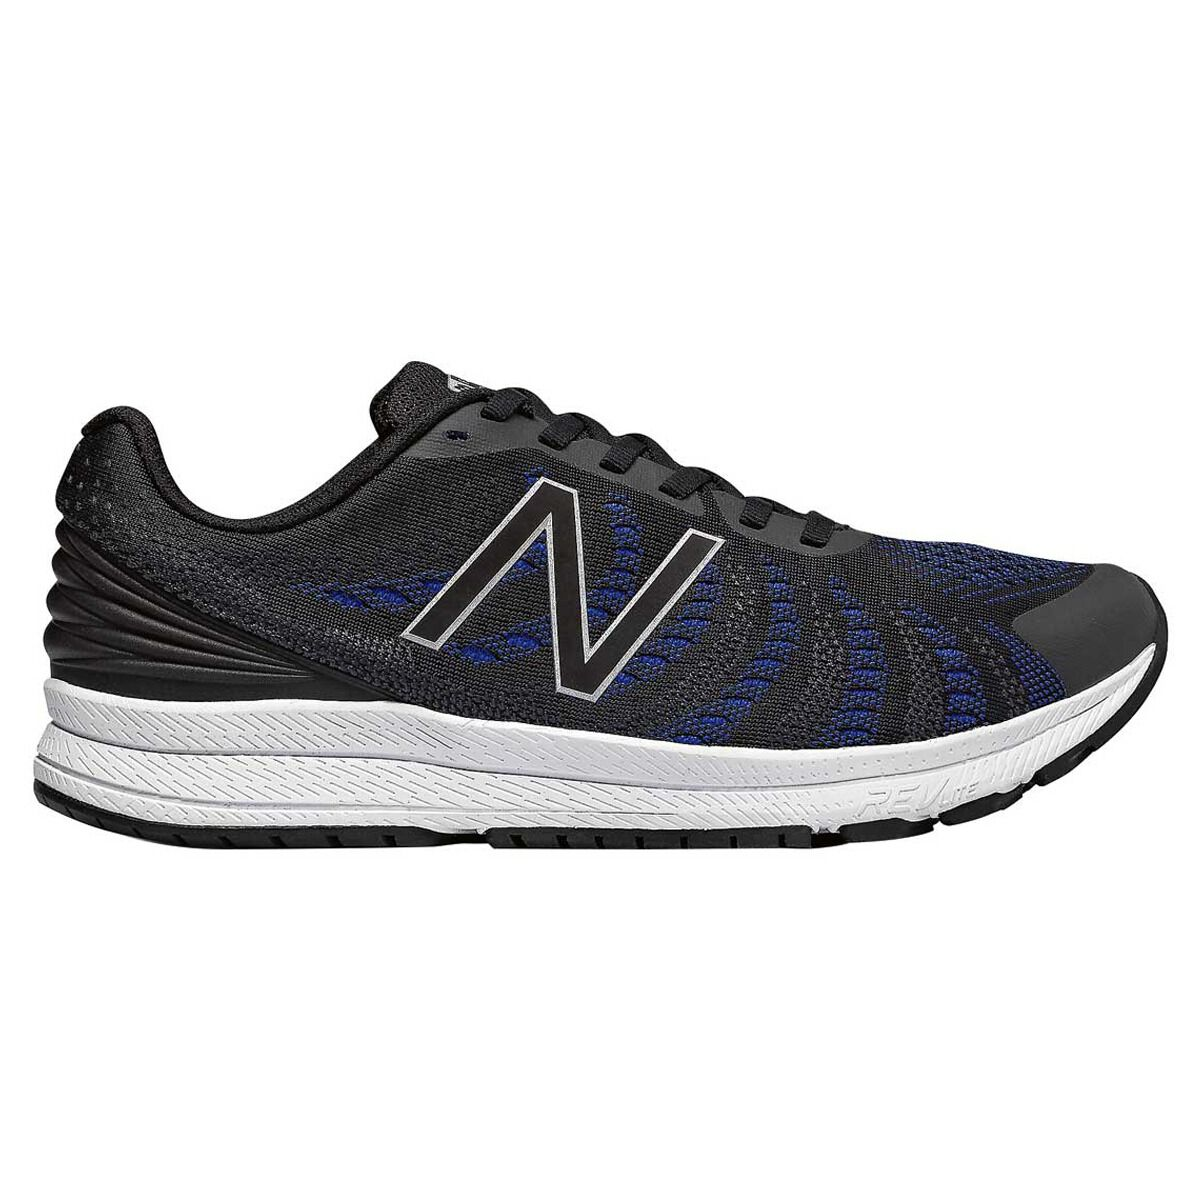 New Balance FuelCore Rush v3 Mens Running Shoes Black Blue US 7